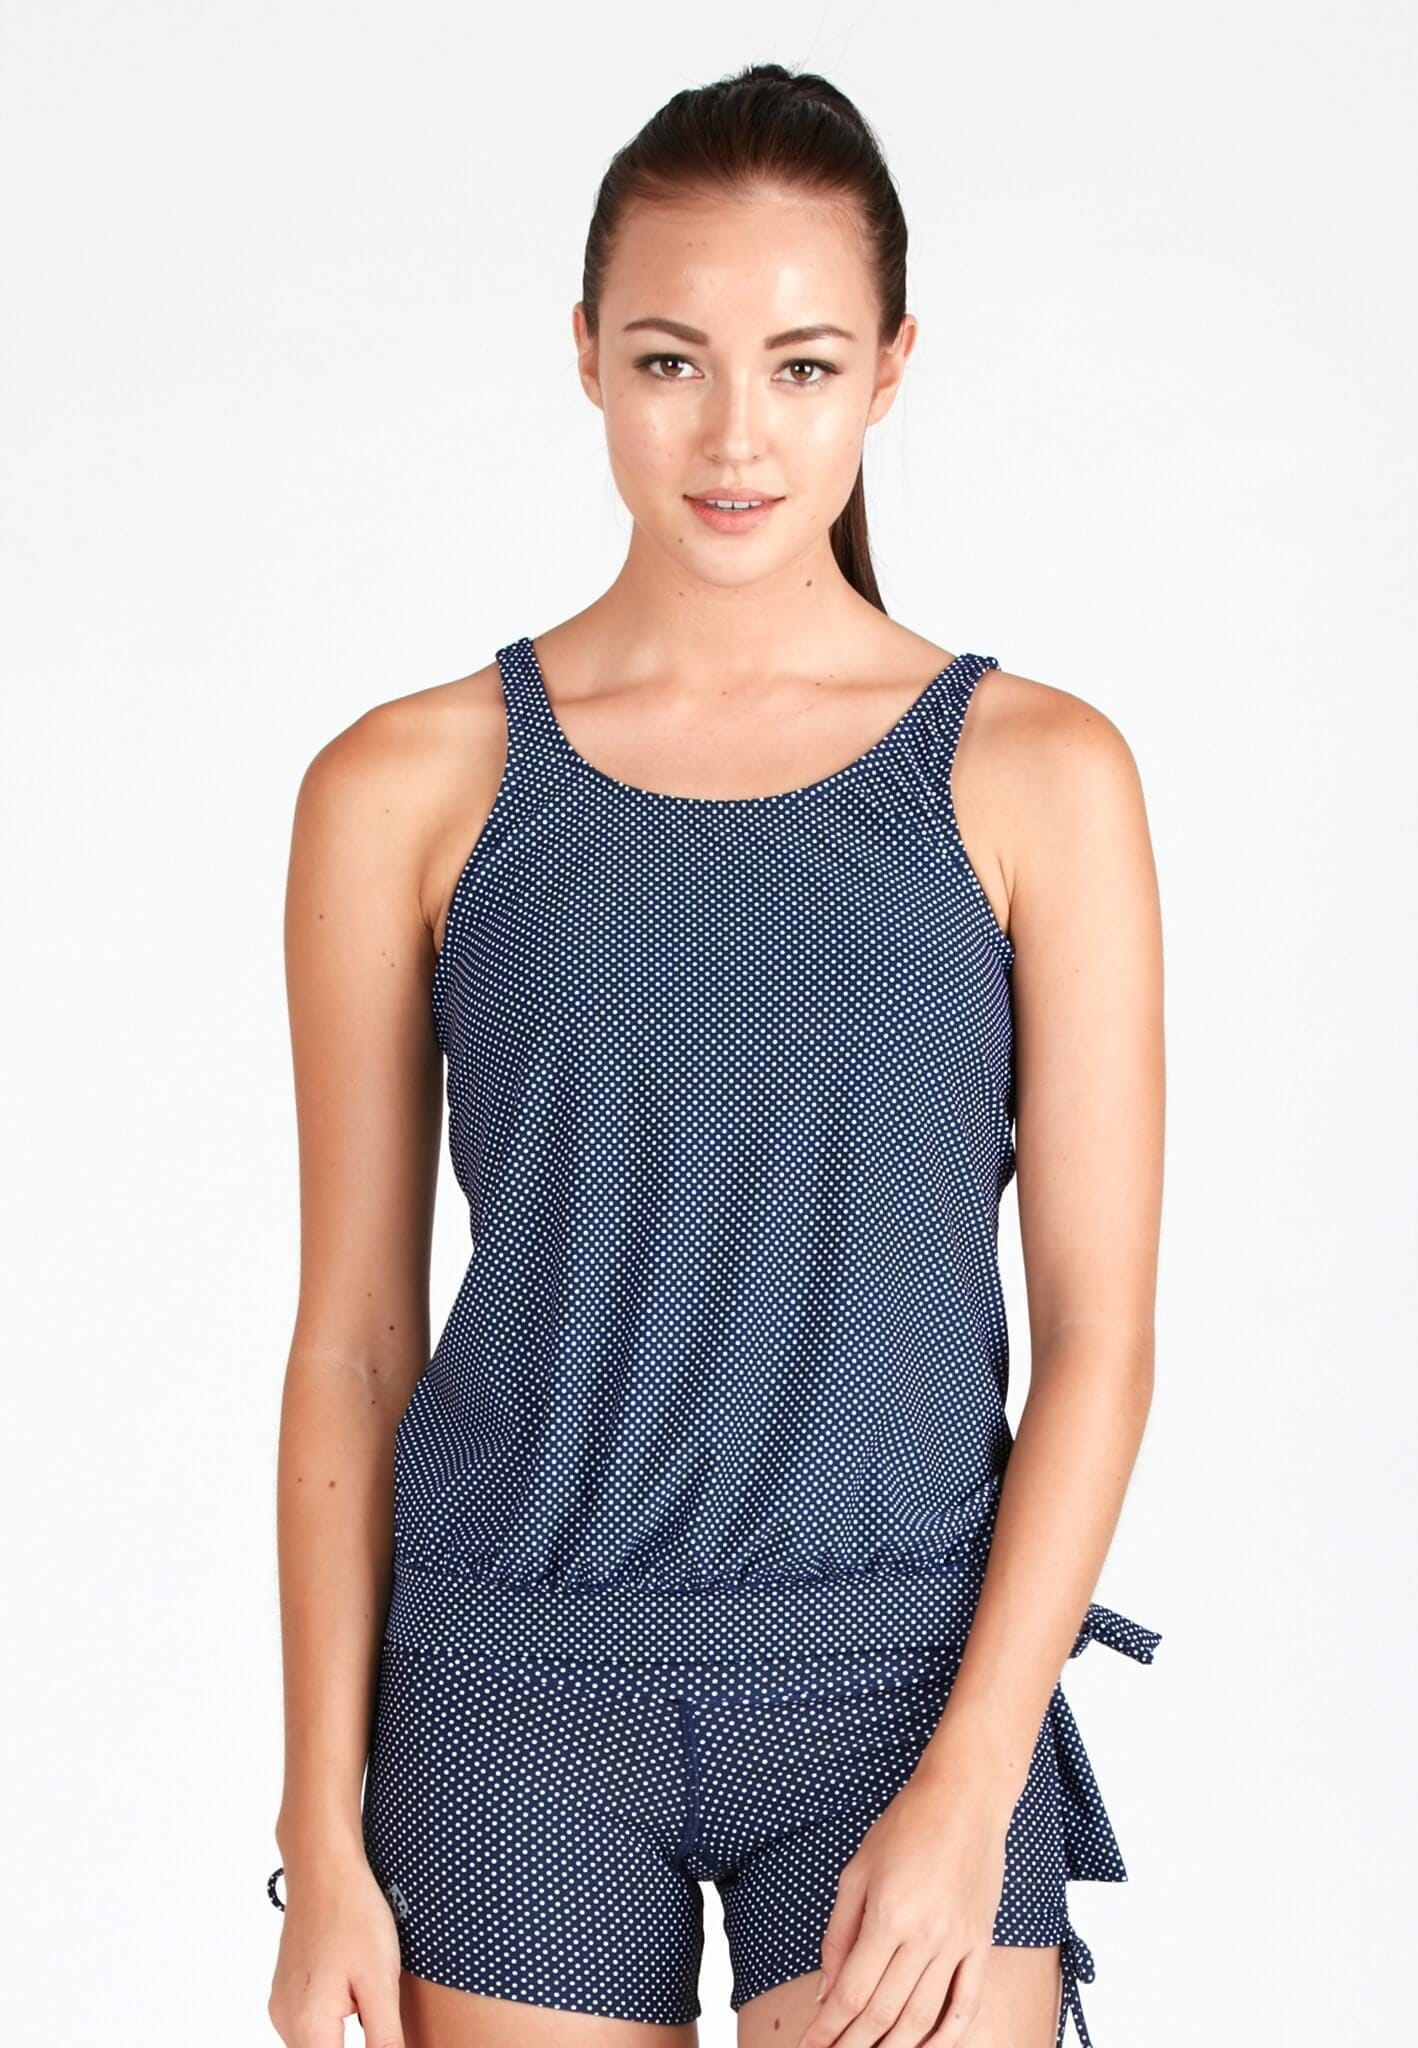 Hemmed Blouson Tankini Top in Dotted Print - FUNFIT